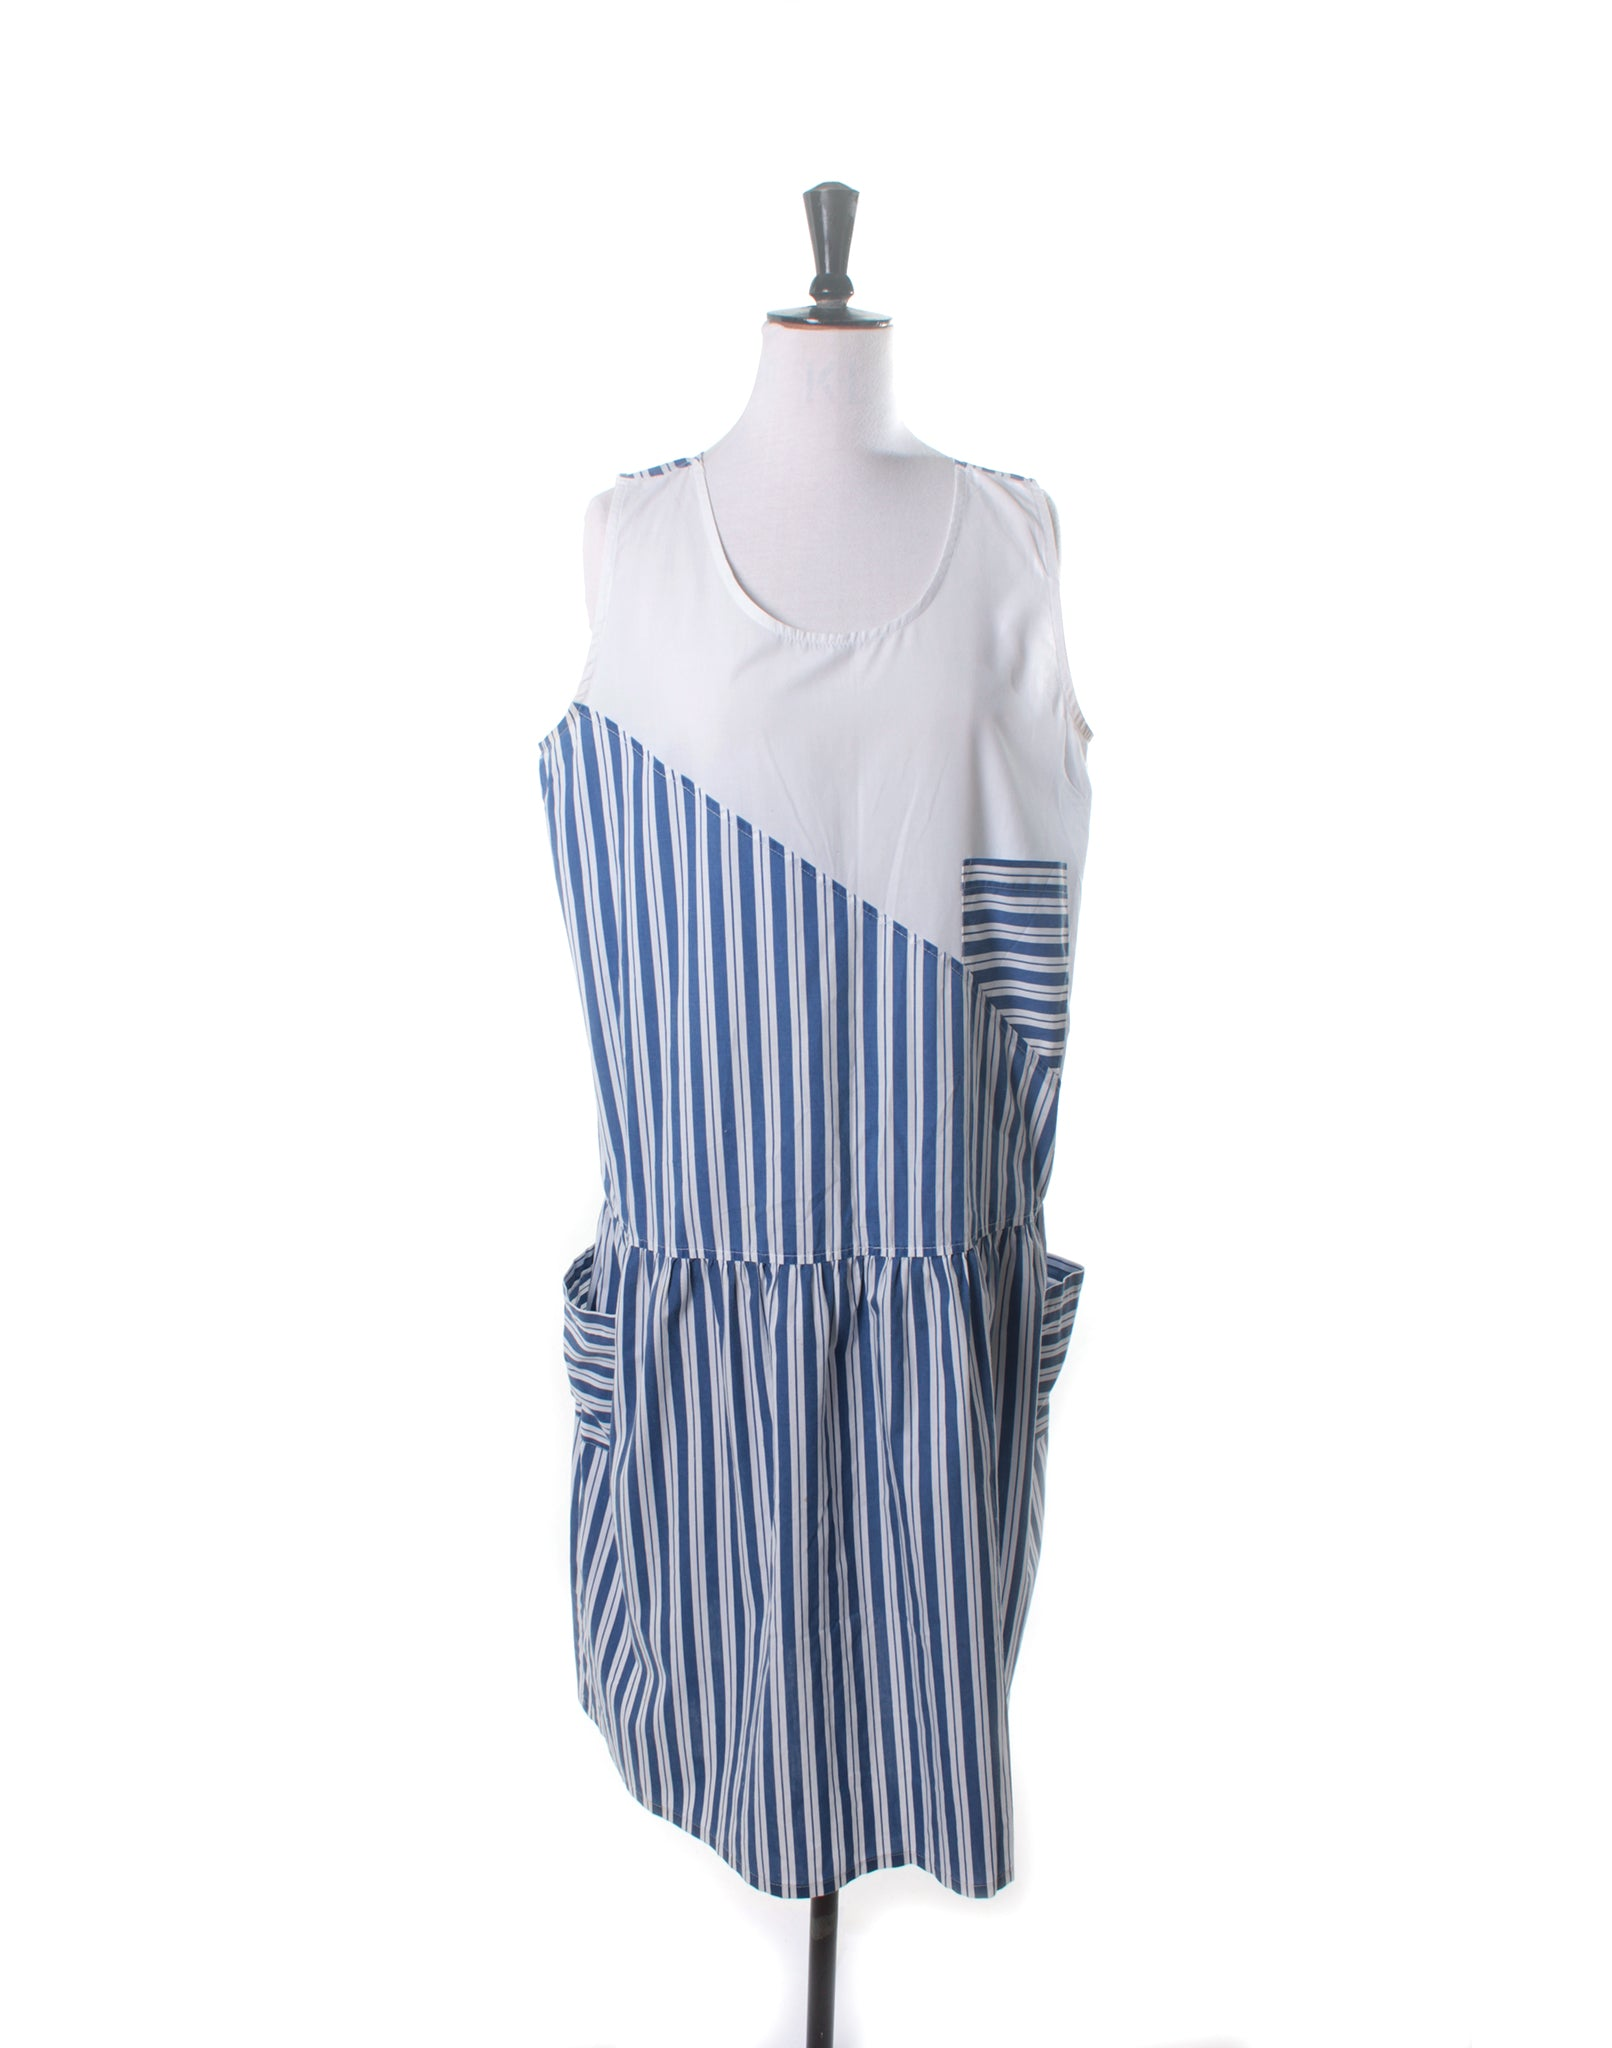 Vintage 80's Blue Stripe Drop Waist Pocket Dress